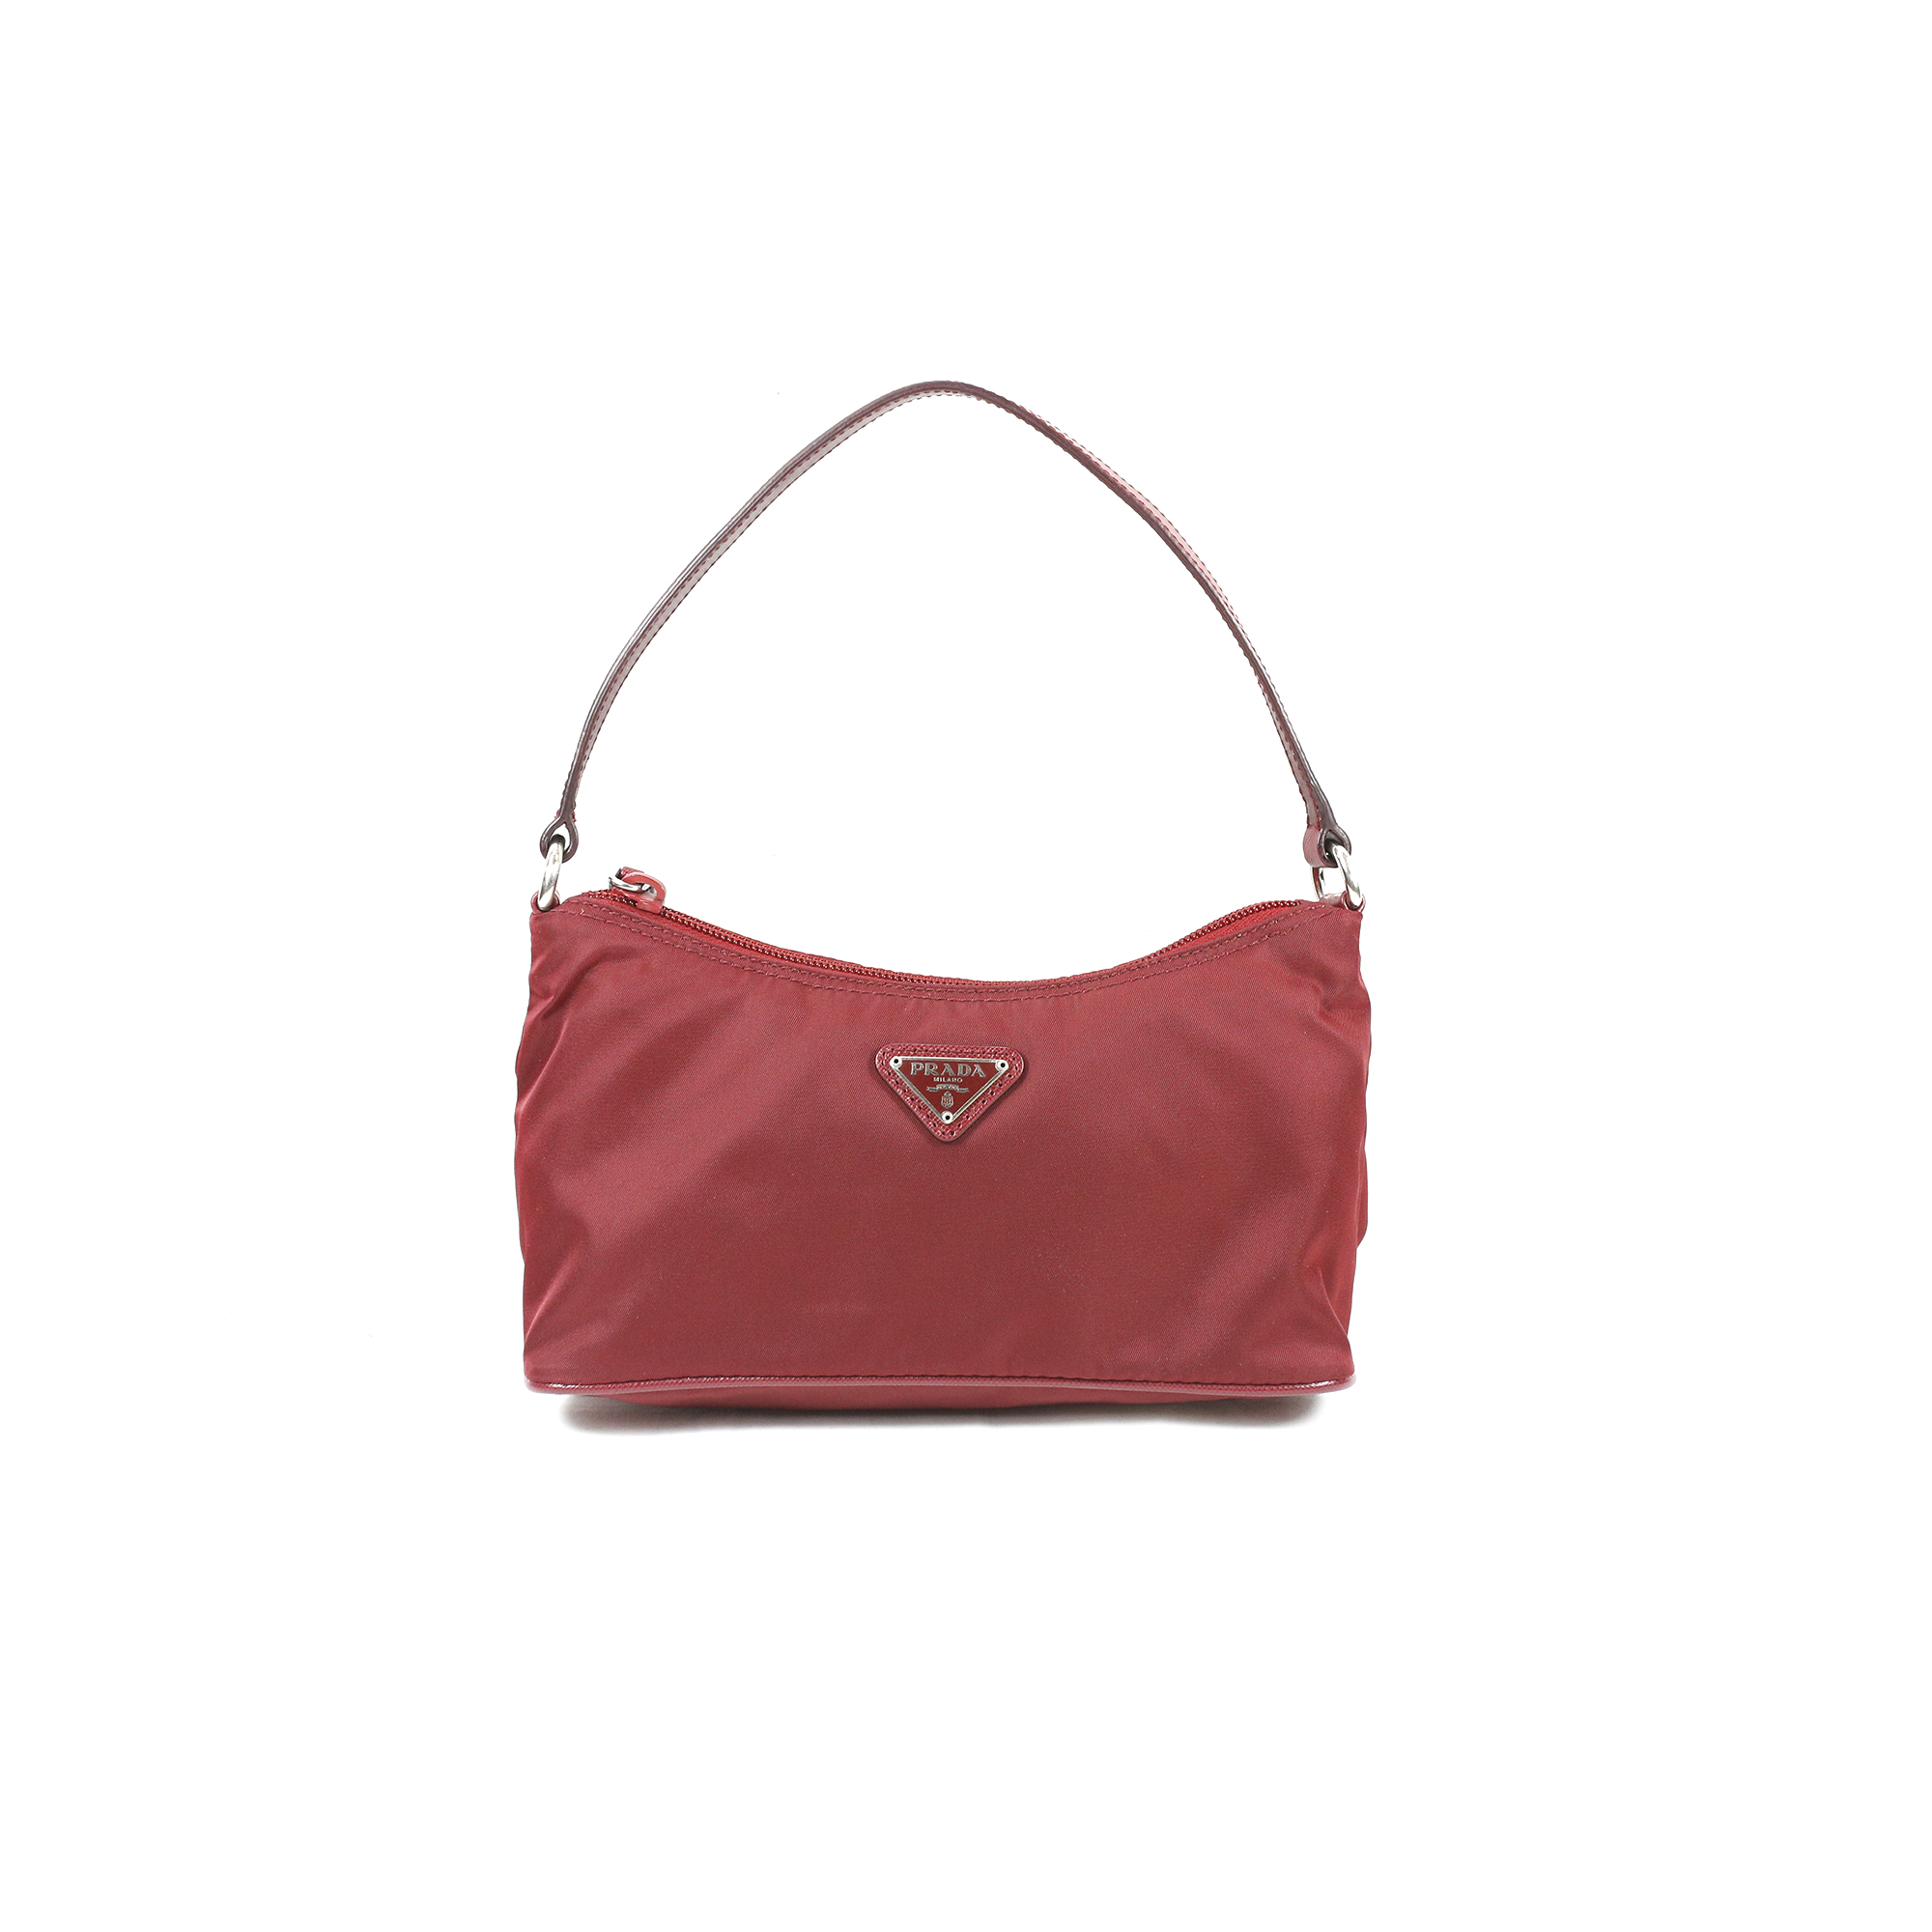 ea7a035afc Authentic Second Hand Prada Small Nylon Bag (PSS-001-00011)